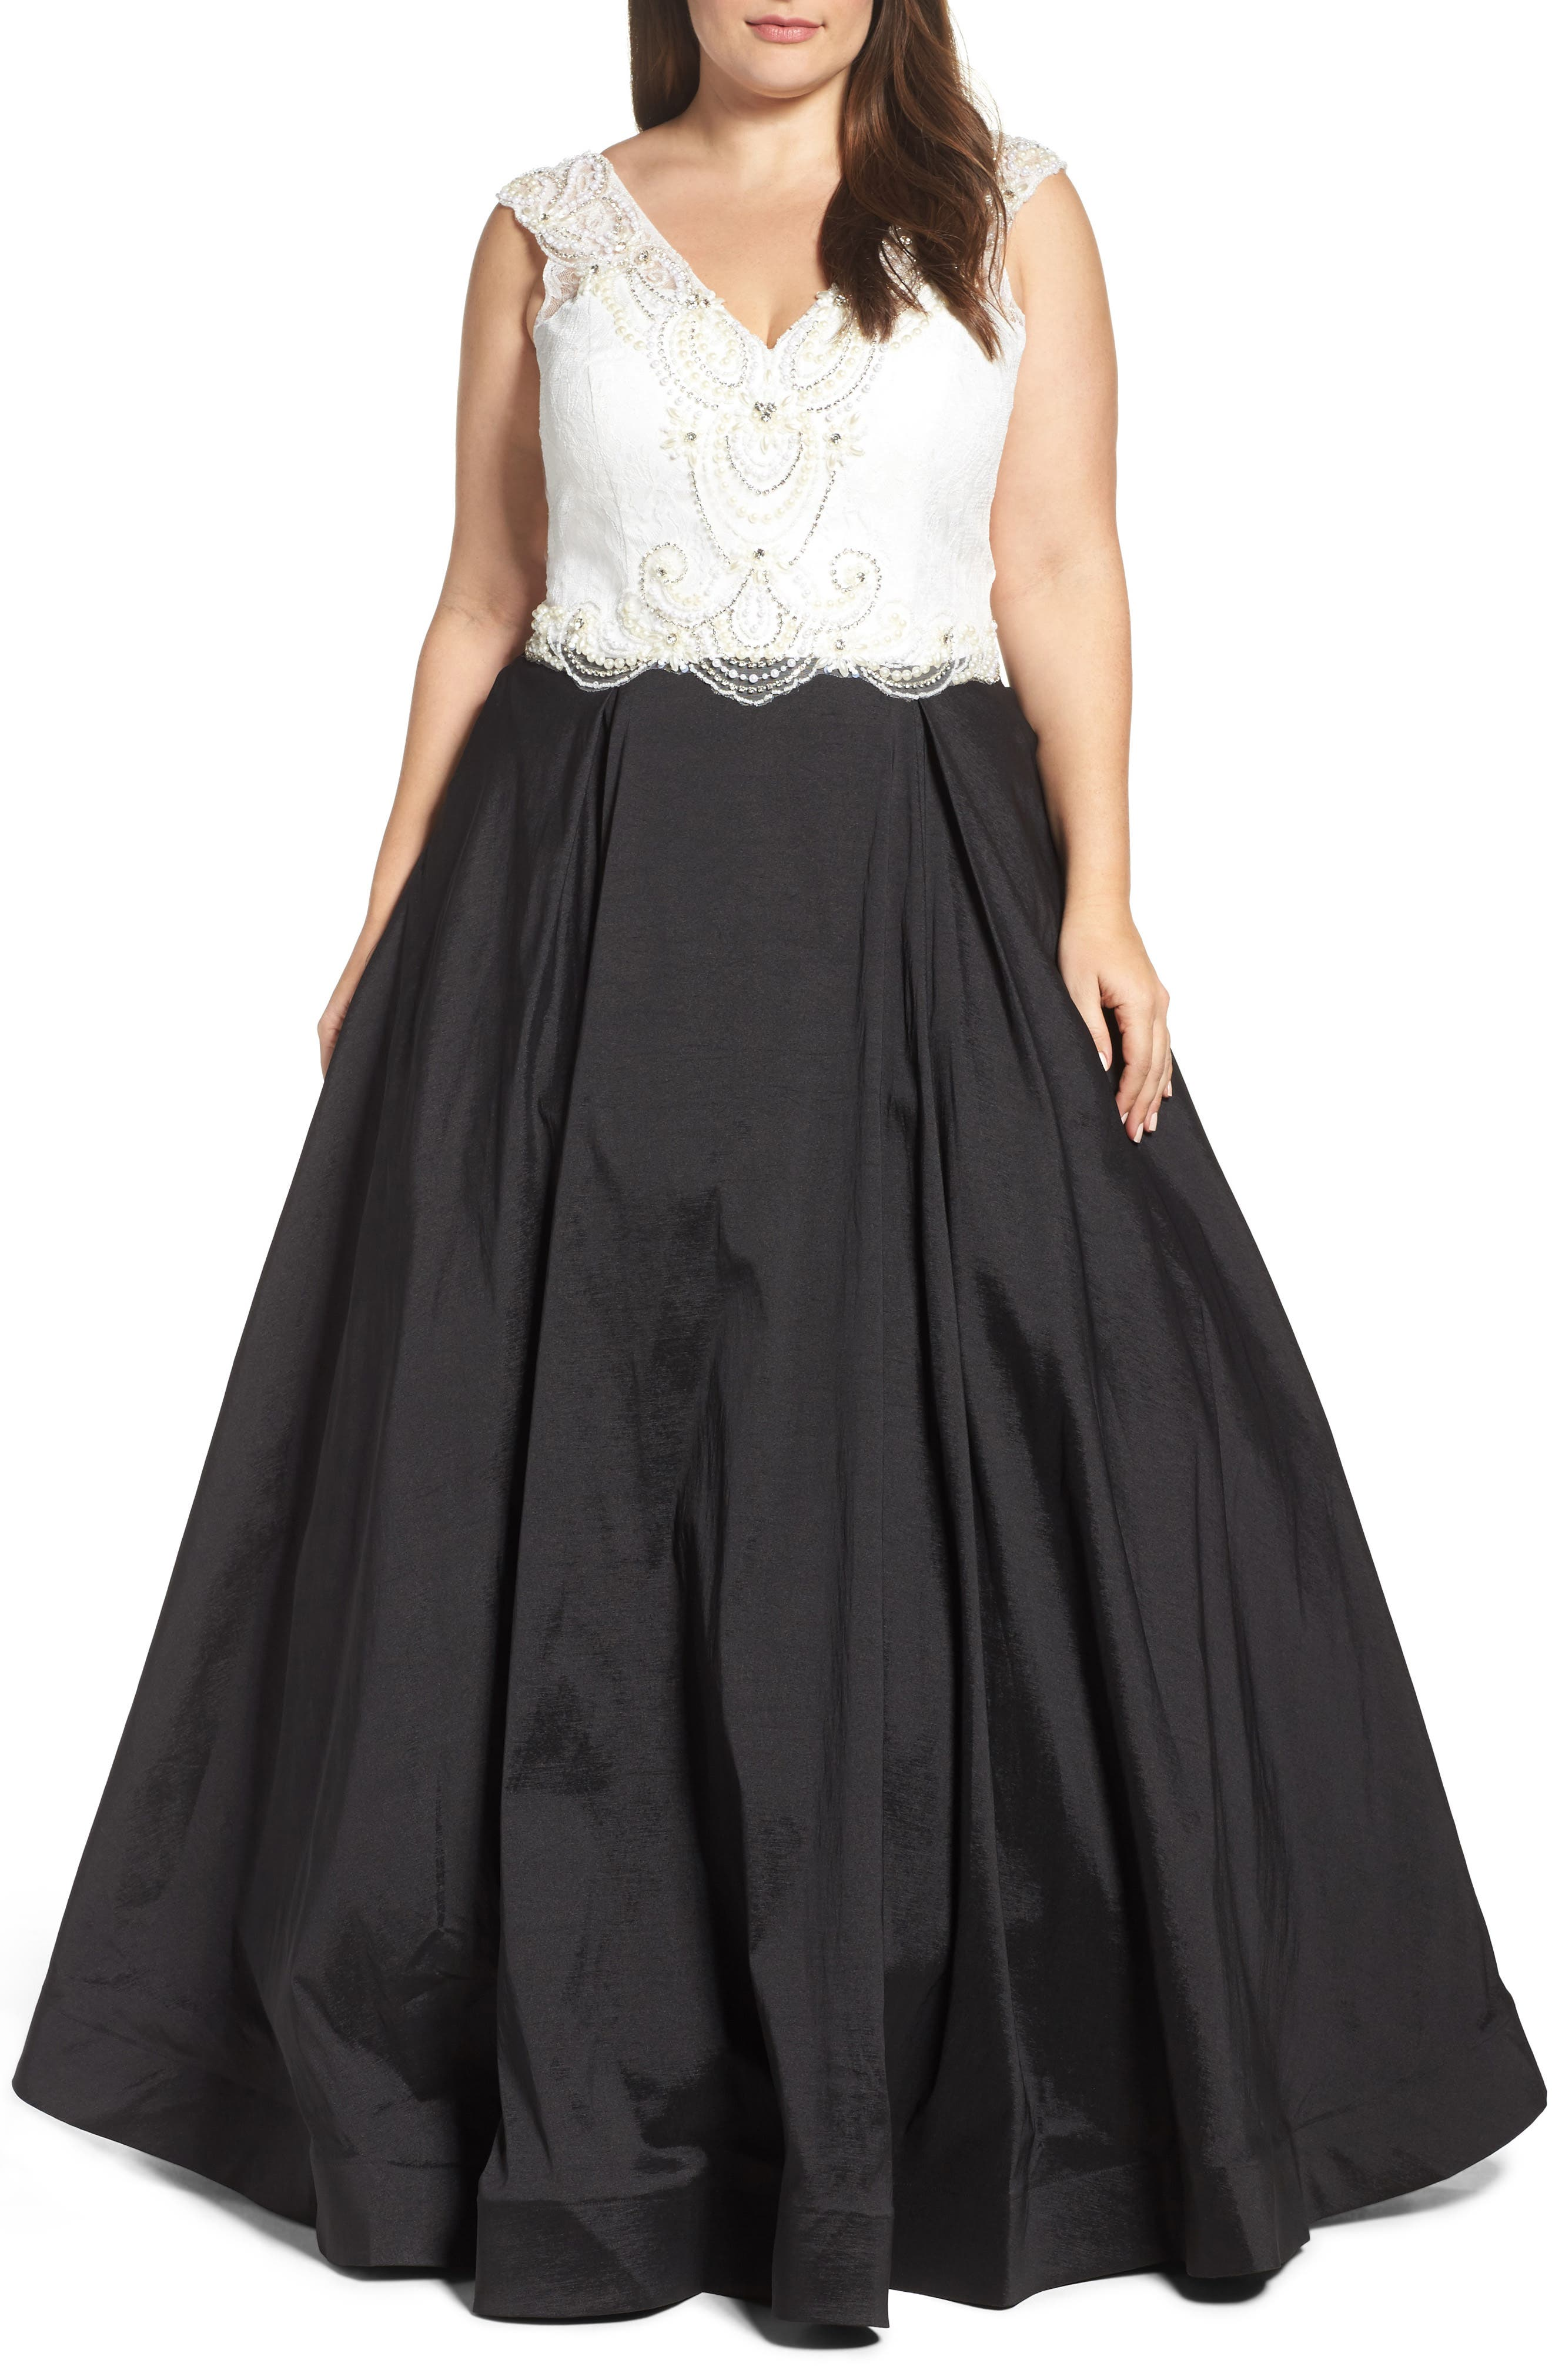 Embellished Lace & Taffeta Ballgown,                         Main,                         color, Black White